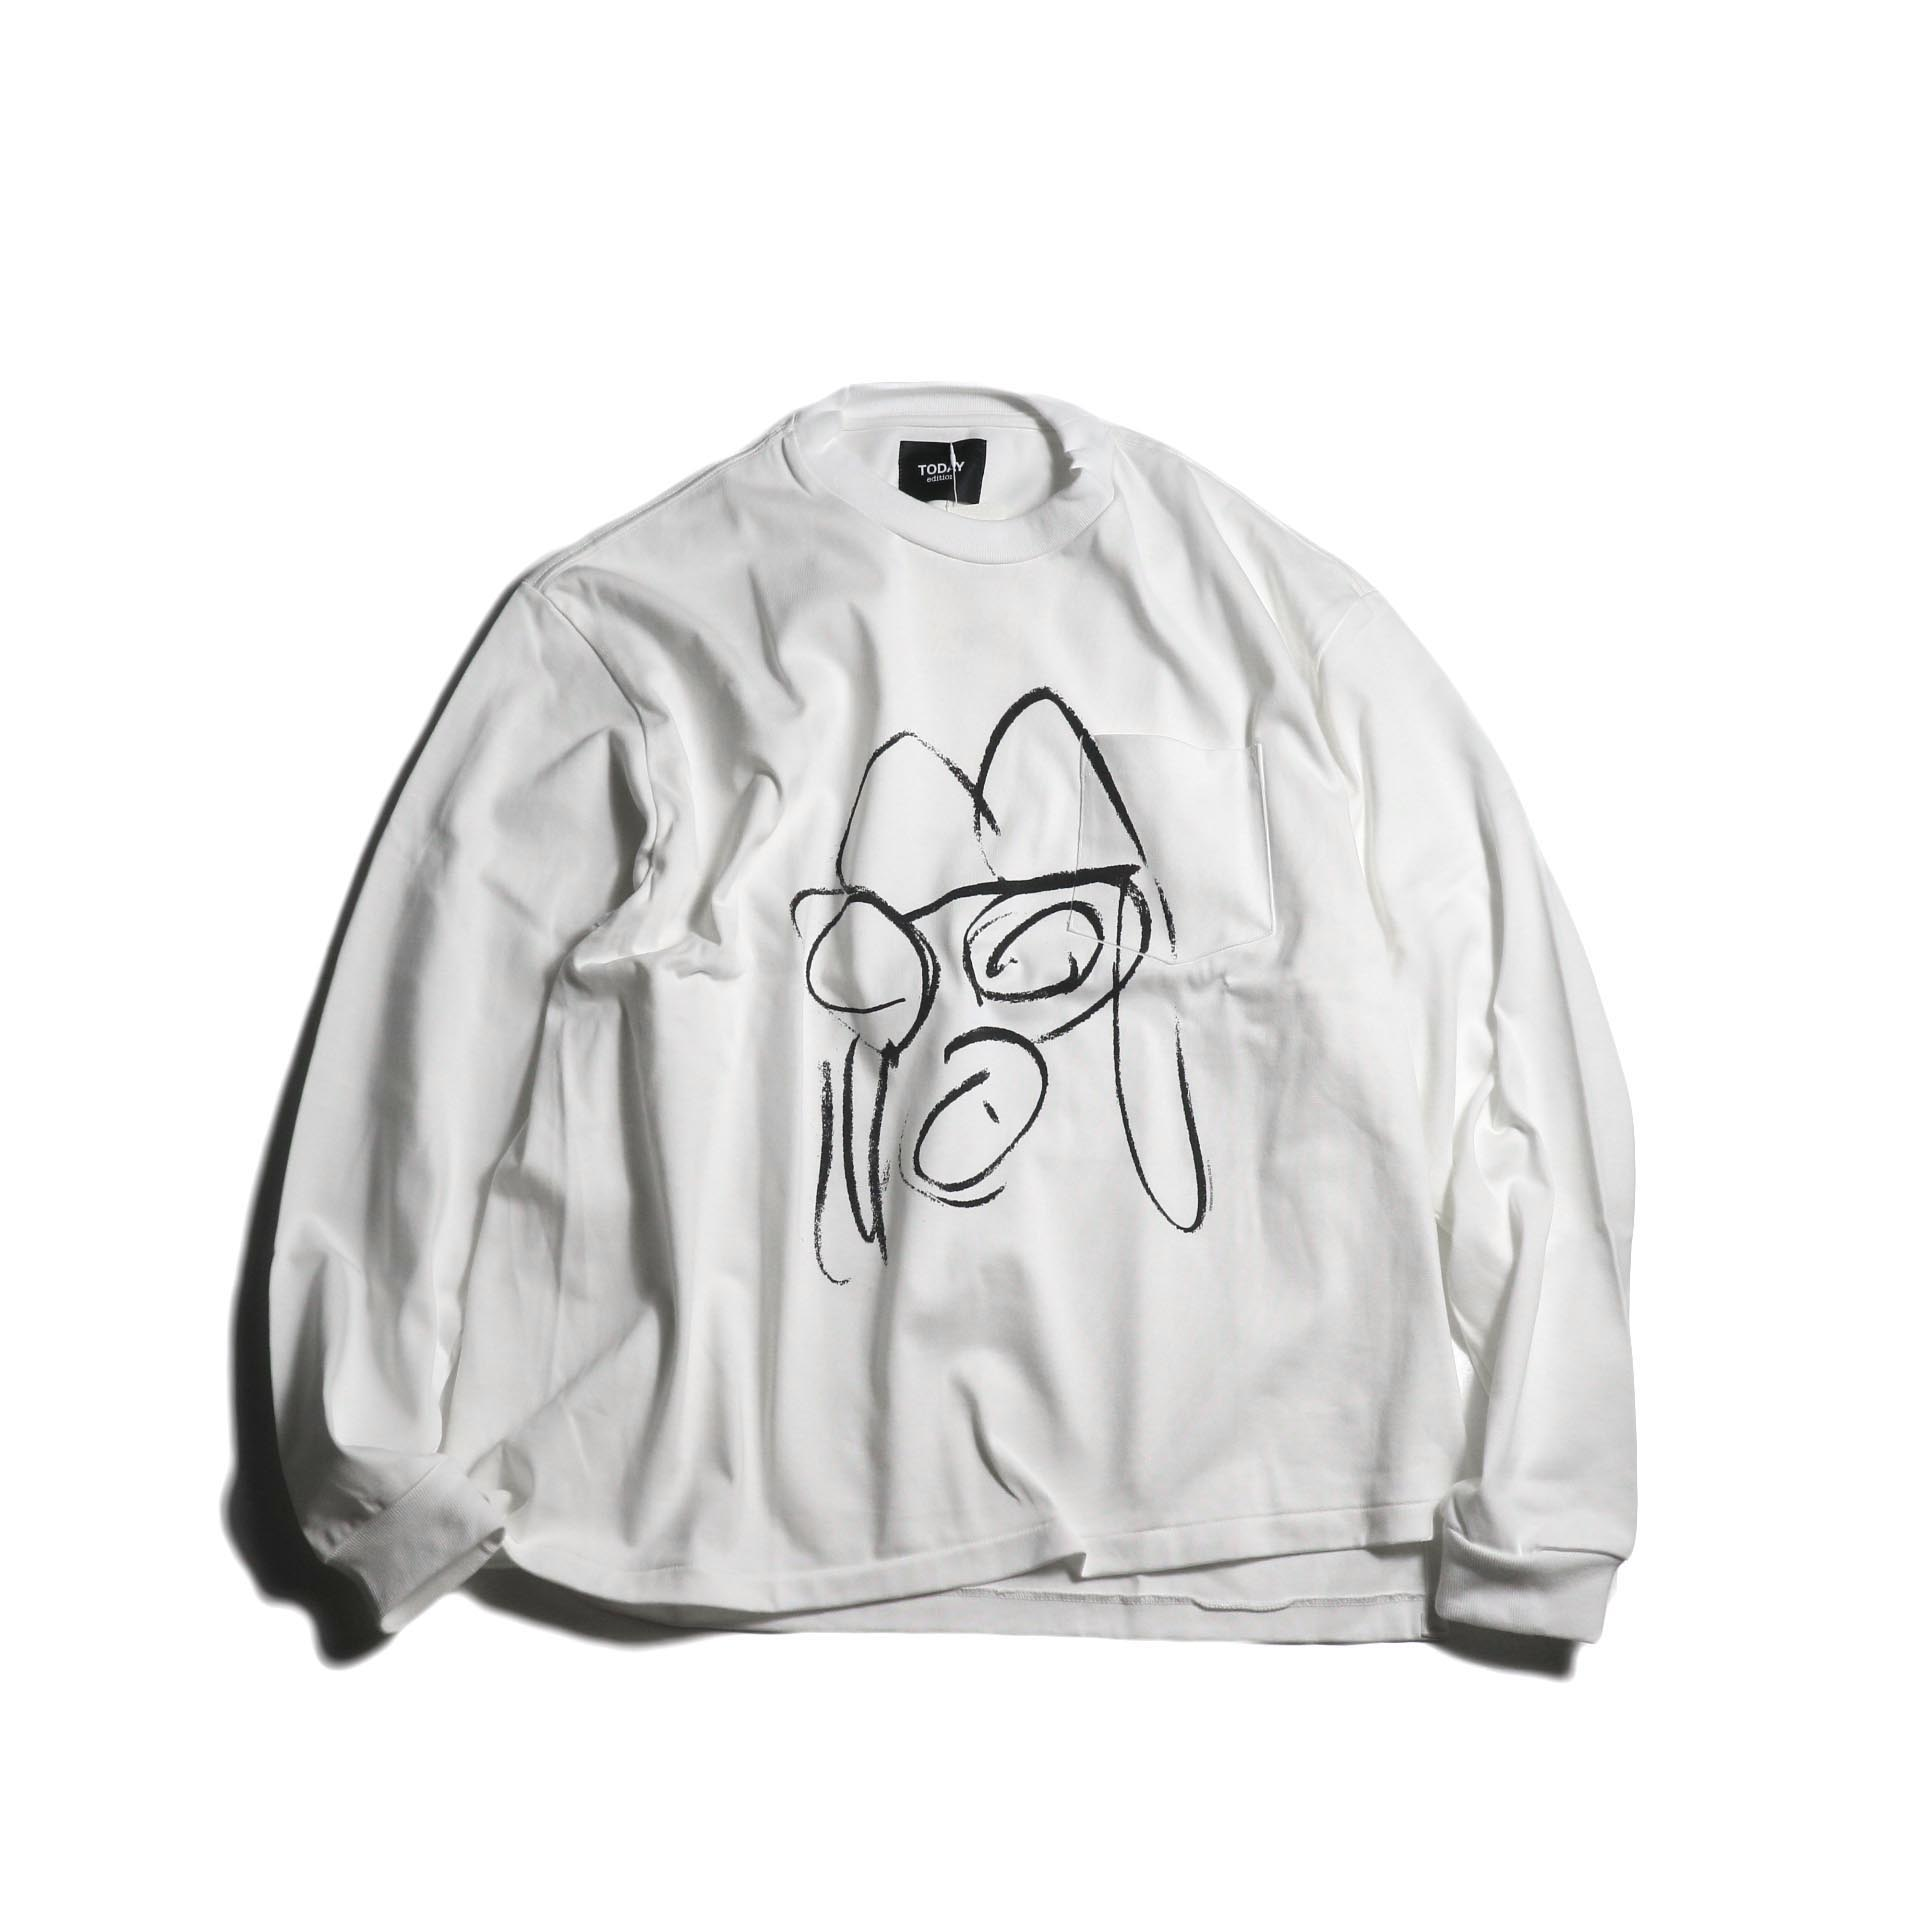 TODAY edition / Drawing Tee #2 (White)